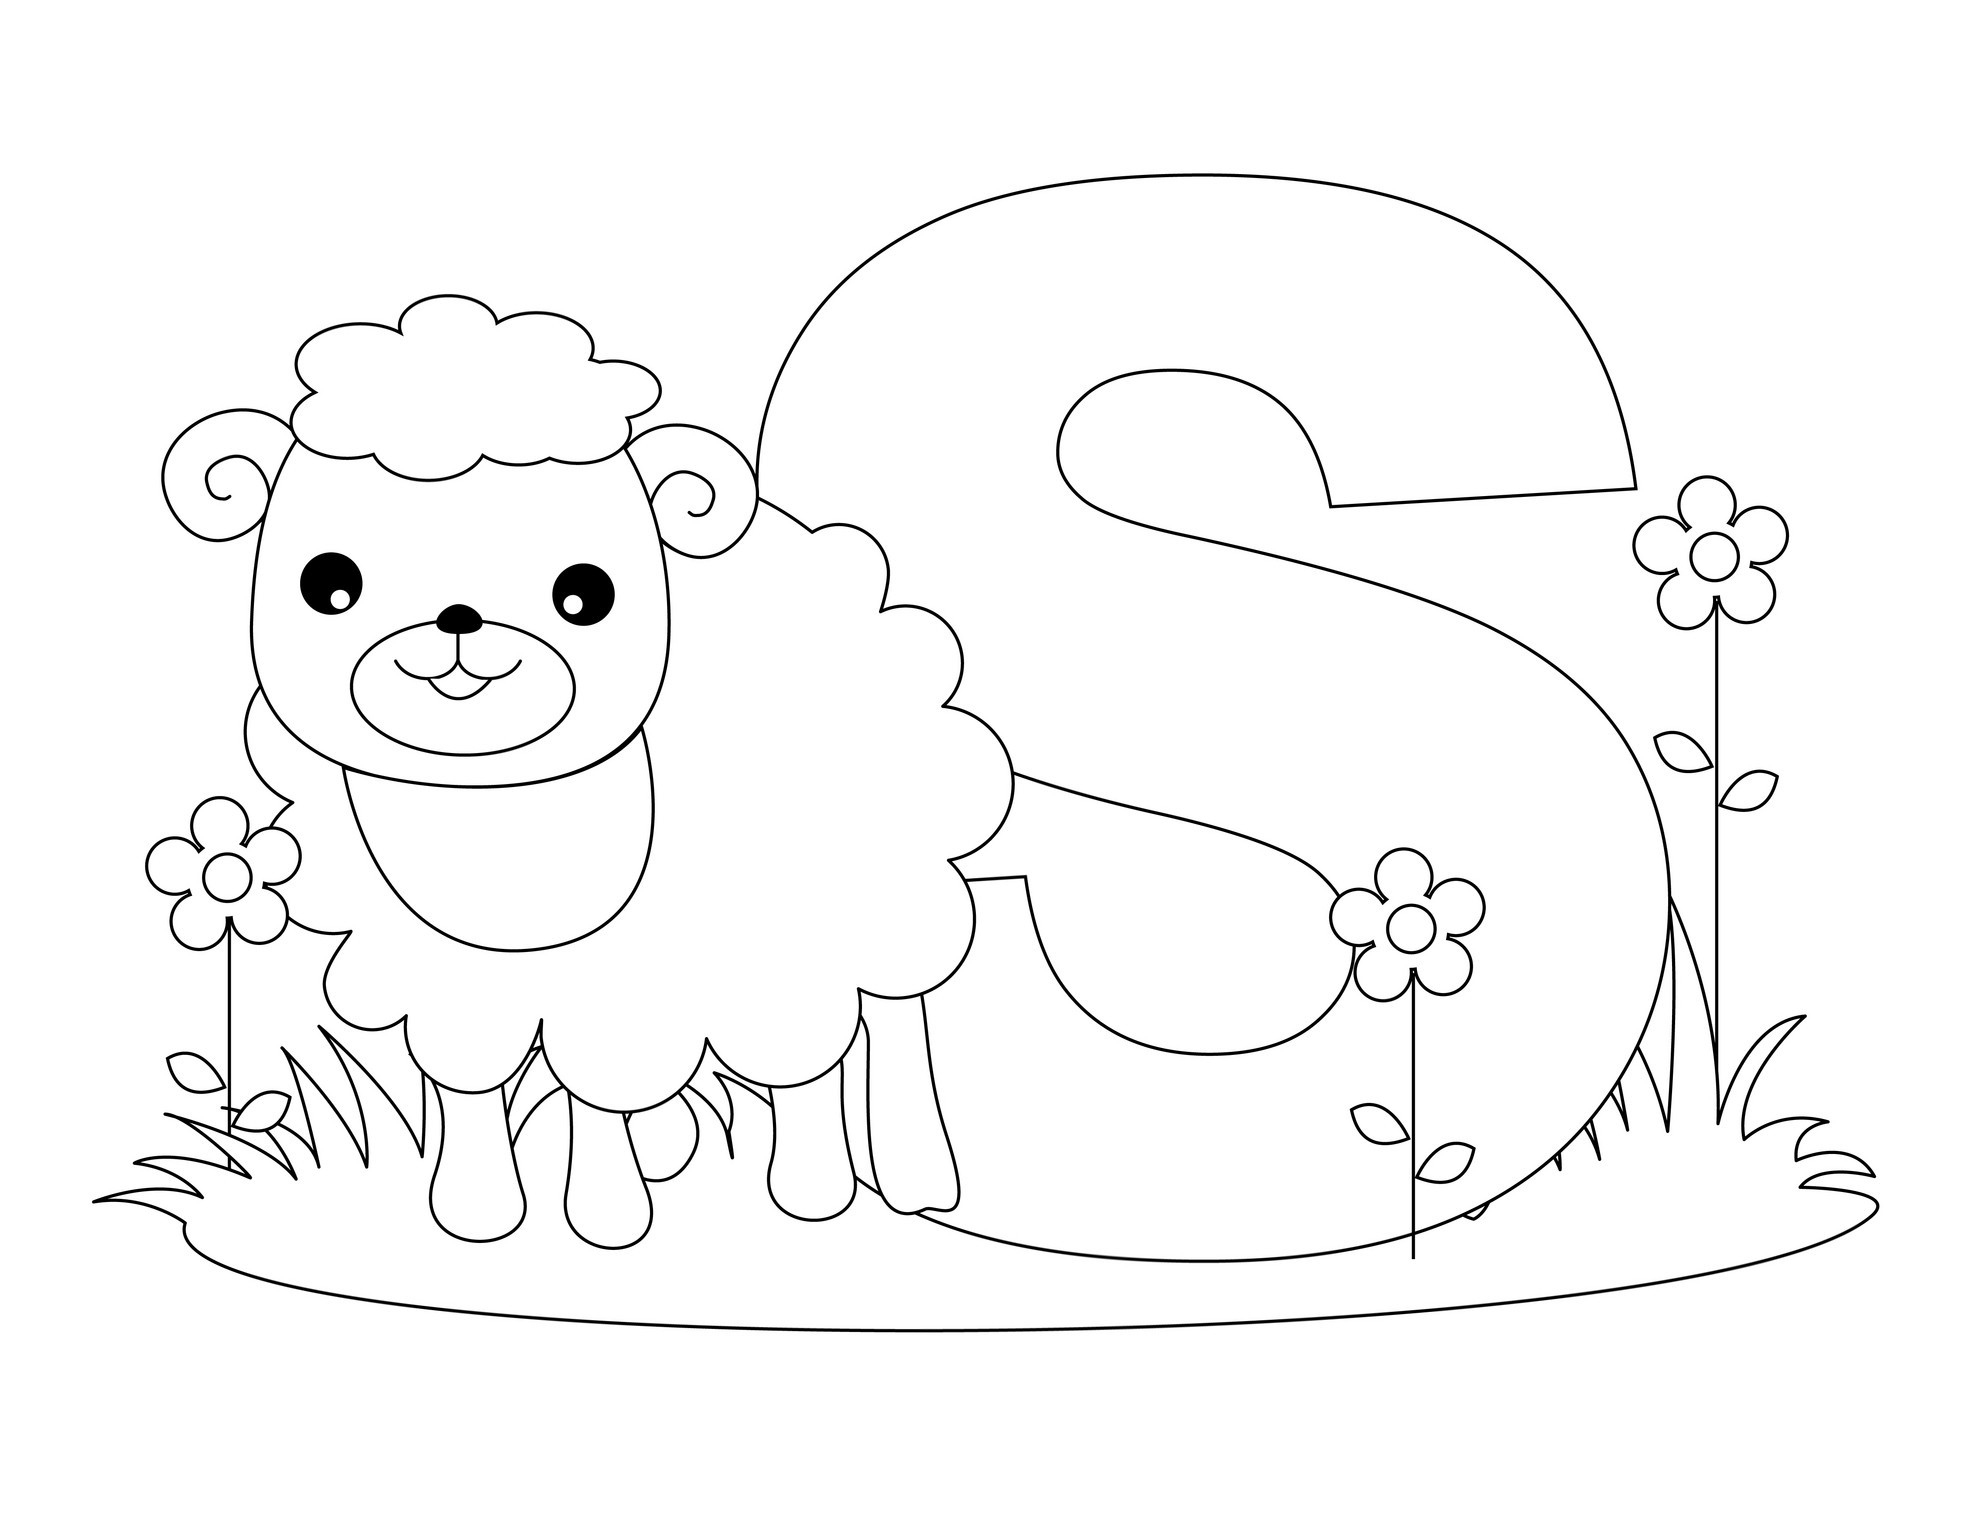 alphabet u coloring pages - photo#35